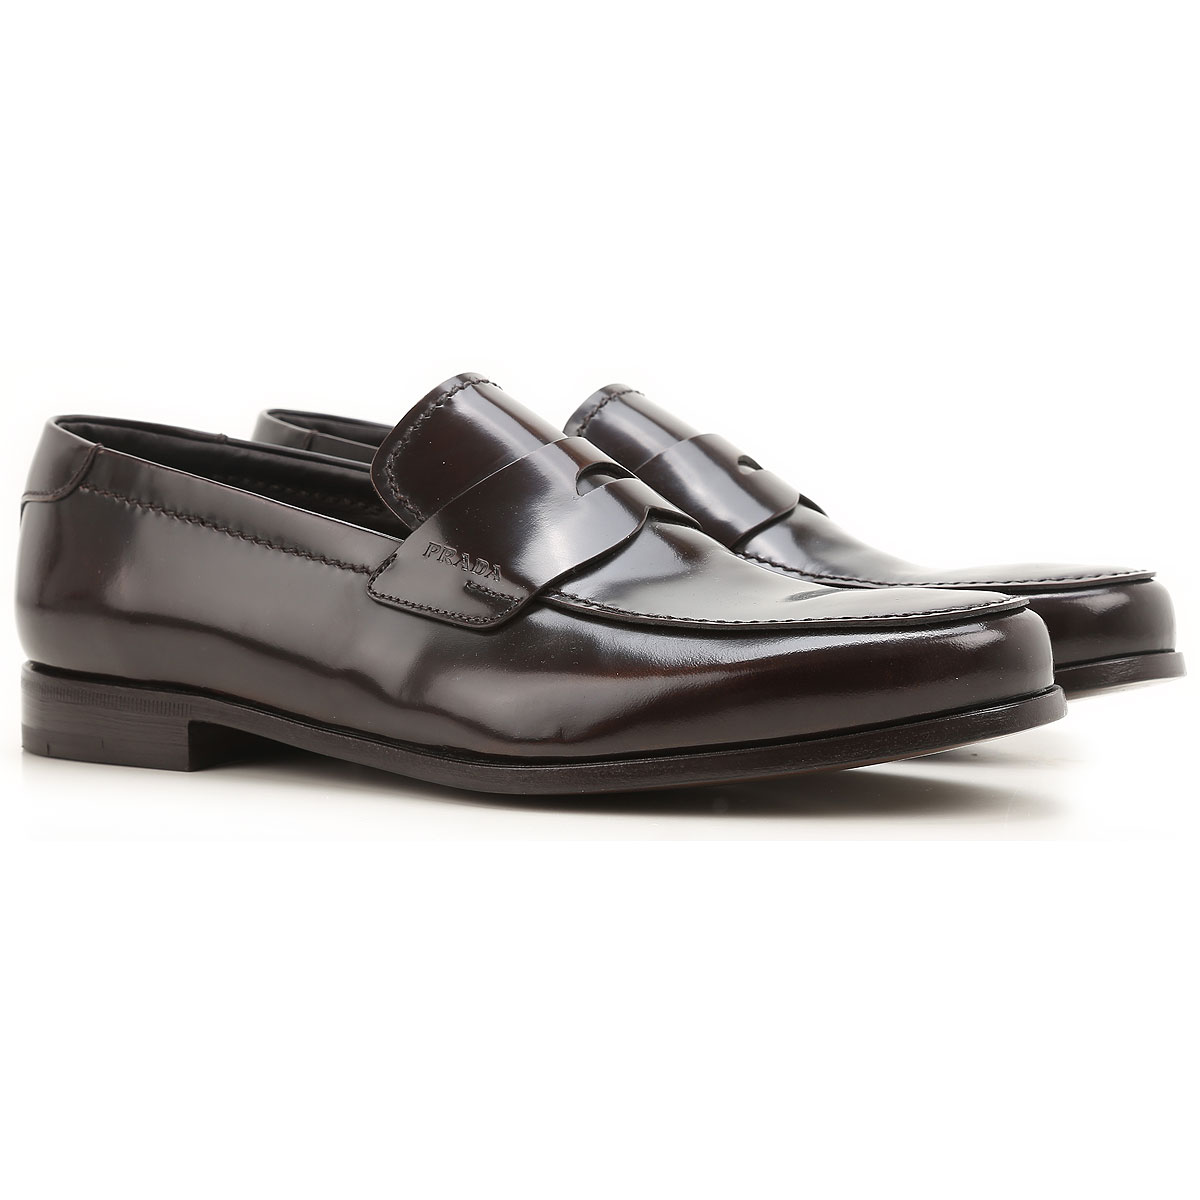 Prada Mens Shoes Sale